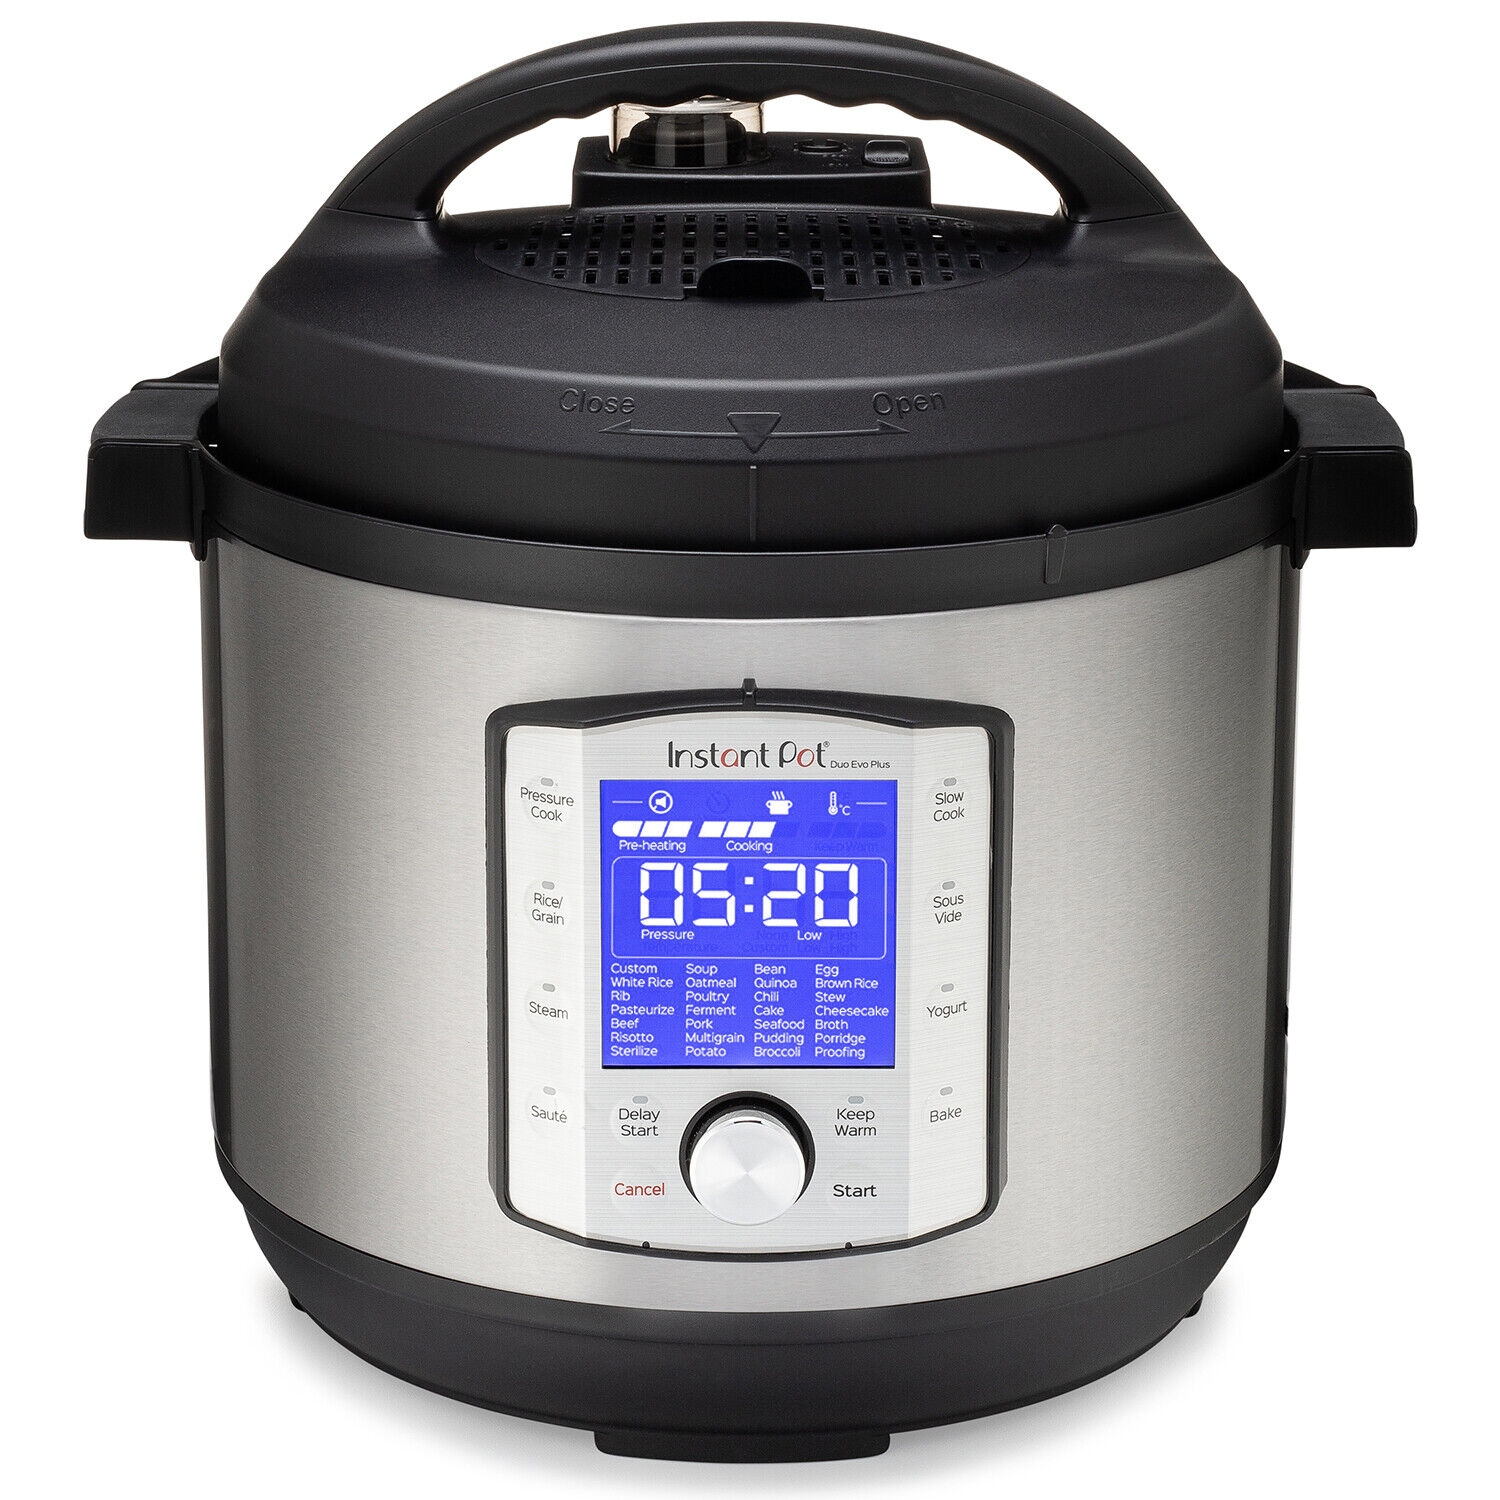 BRAND NEW Instant Pot Duo Evo Plus 80 10-in-1 Electric Press